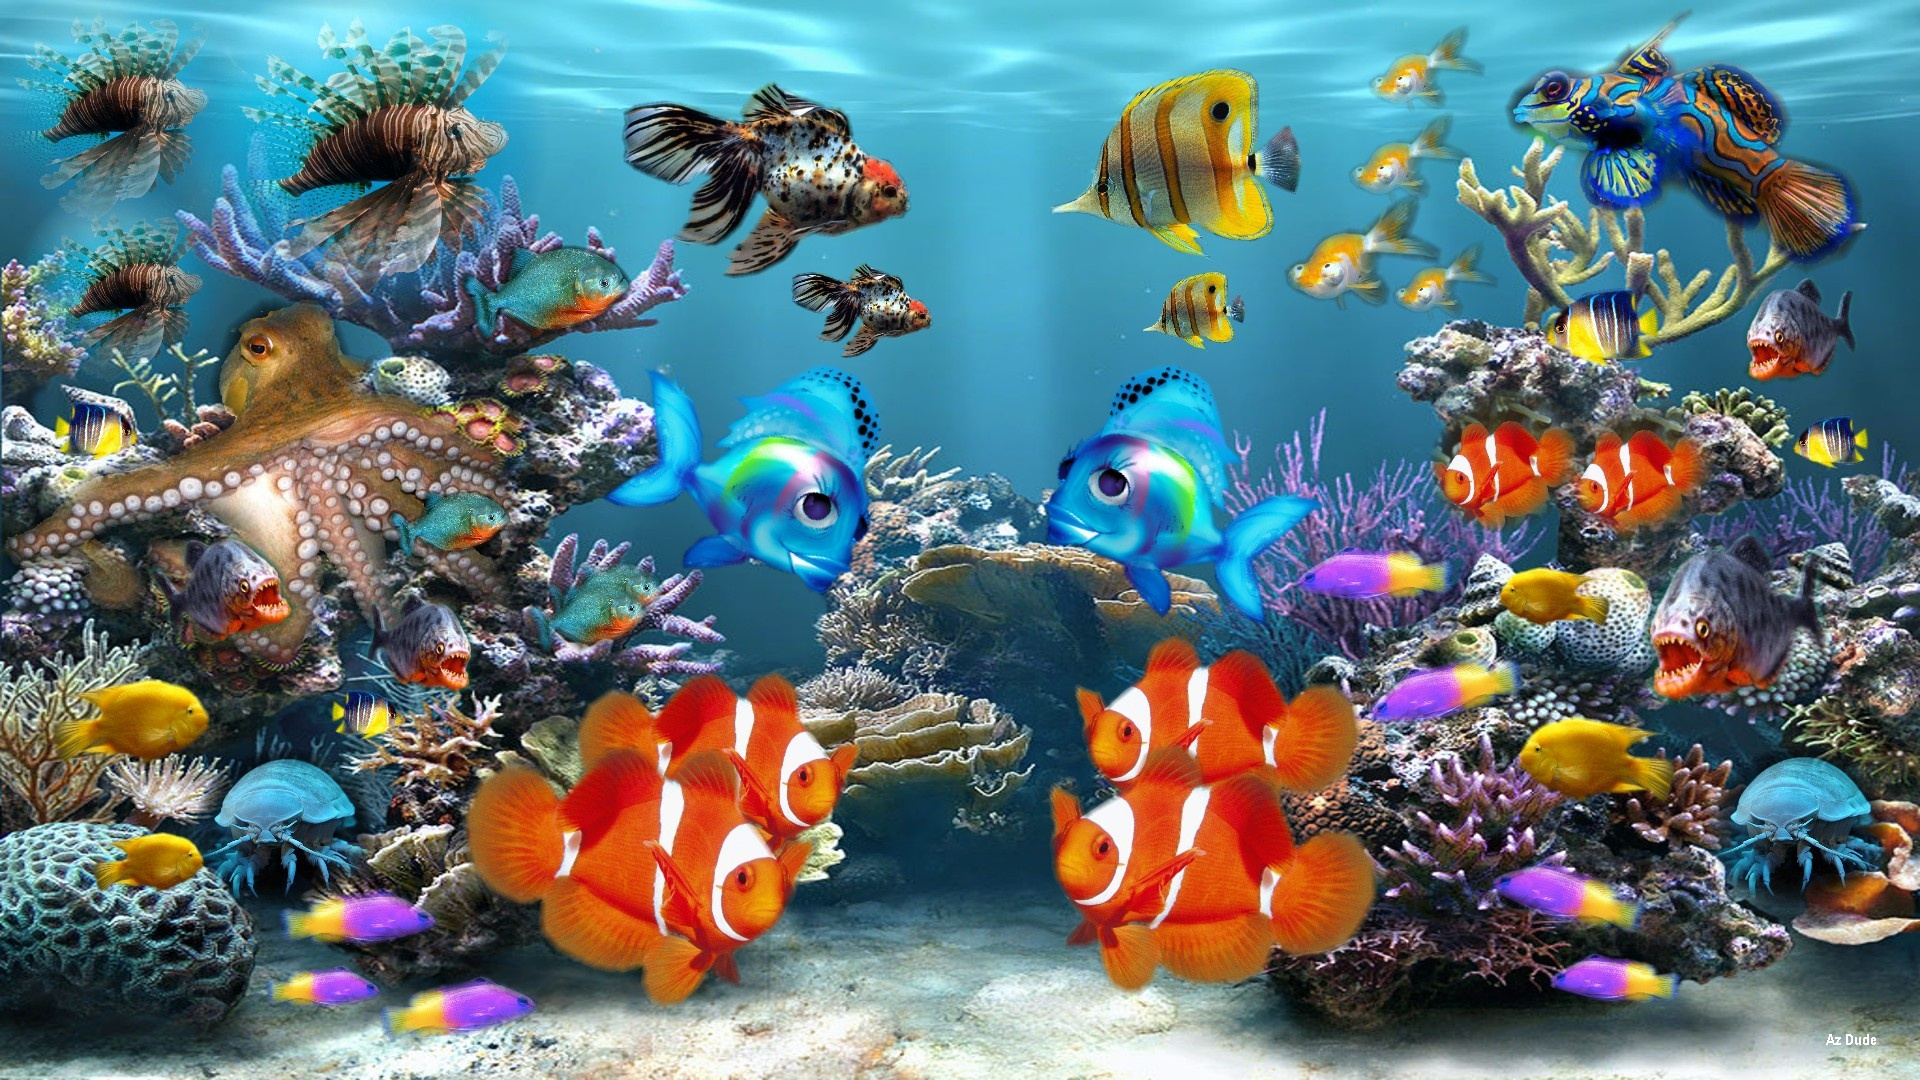 ... Live Aquarium Wallpaper Windows 7 Wallpapersafari; Colorful Fish Latest  Free Images Photos Hd Wallpapers Download ...